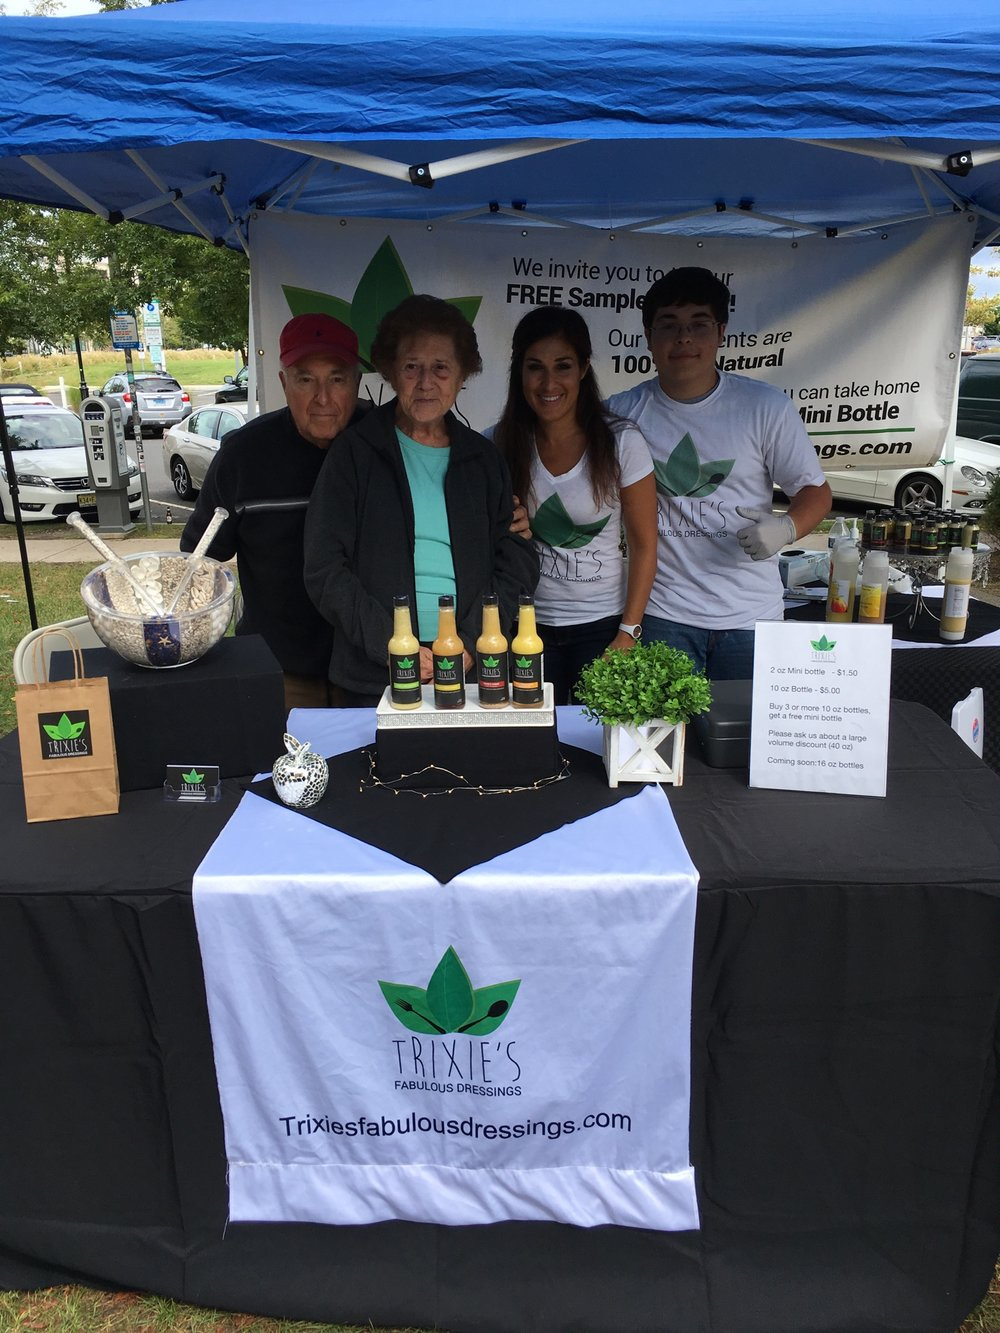 My 87 year old father, 83 year old mother and my son Nicholas all helping me out at the Asbury Park farmers market on Labor Day weekend 2017.